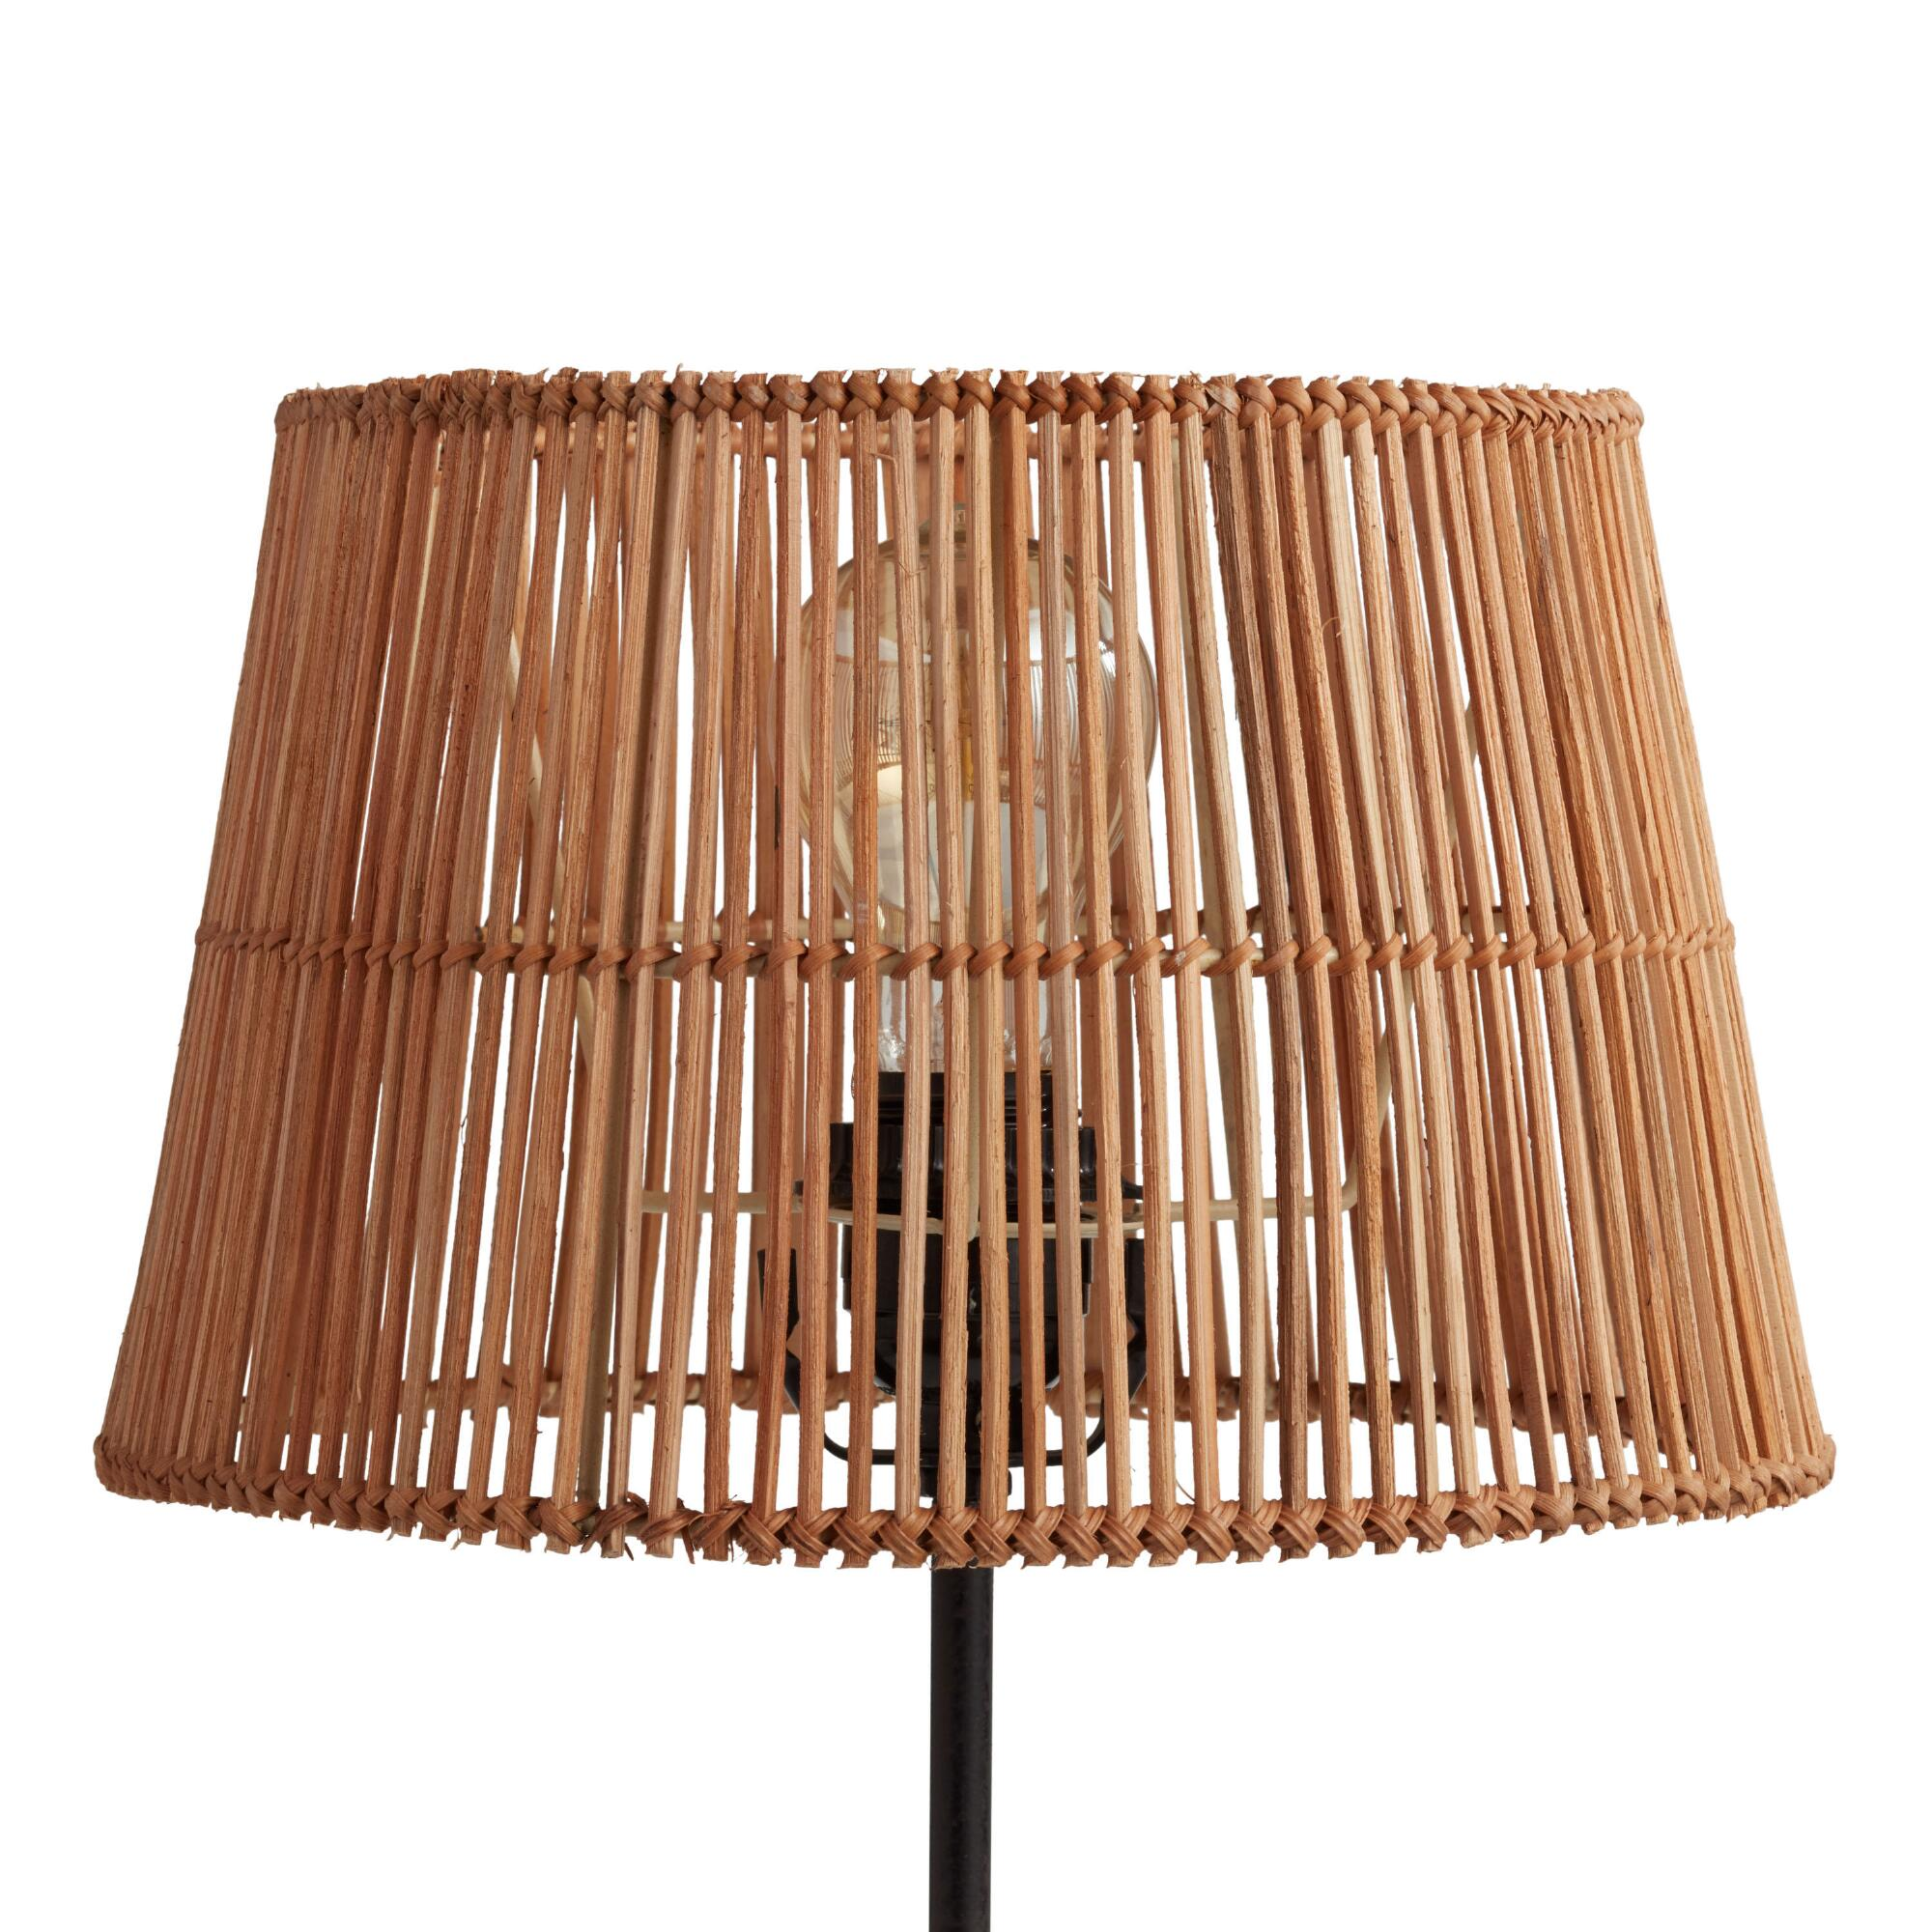 Natural Rattan Accent Lamp Shade by World Market